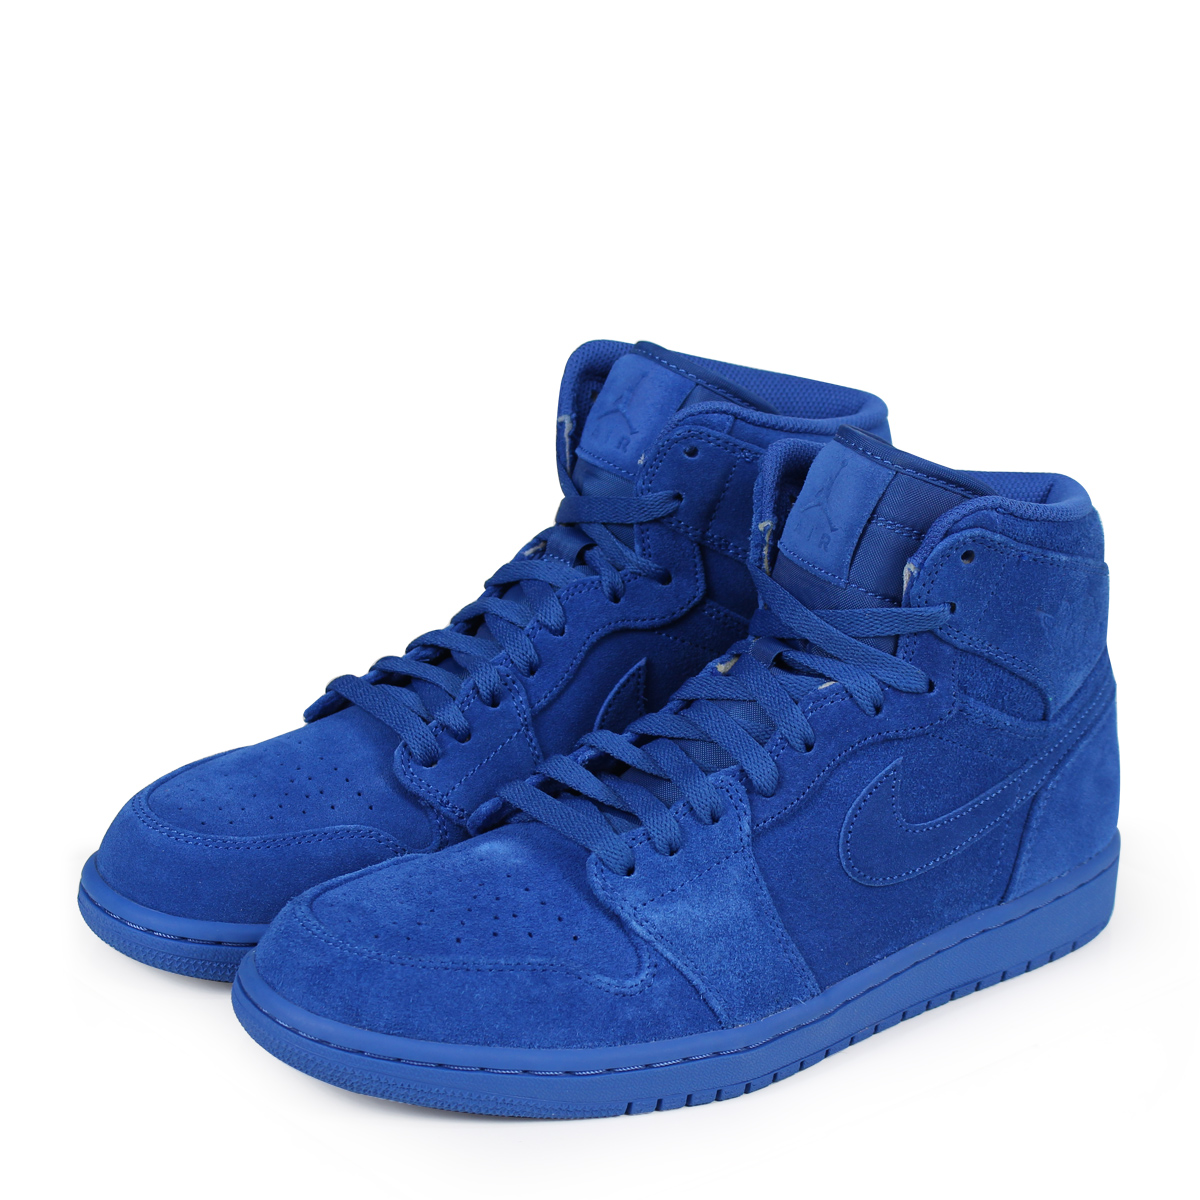 ce7c08d7a9b392 NIKE AIR JORDAN 1 RETRO HIGH Nike Air Jordan 1 nostalgic high sneakers men  332